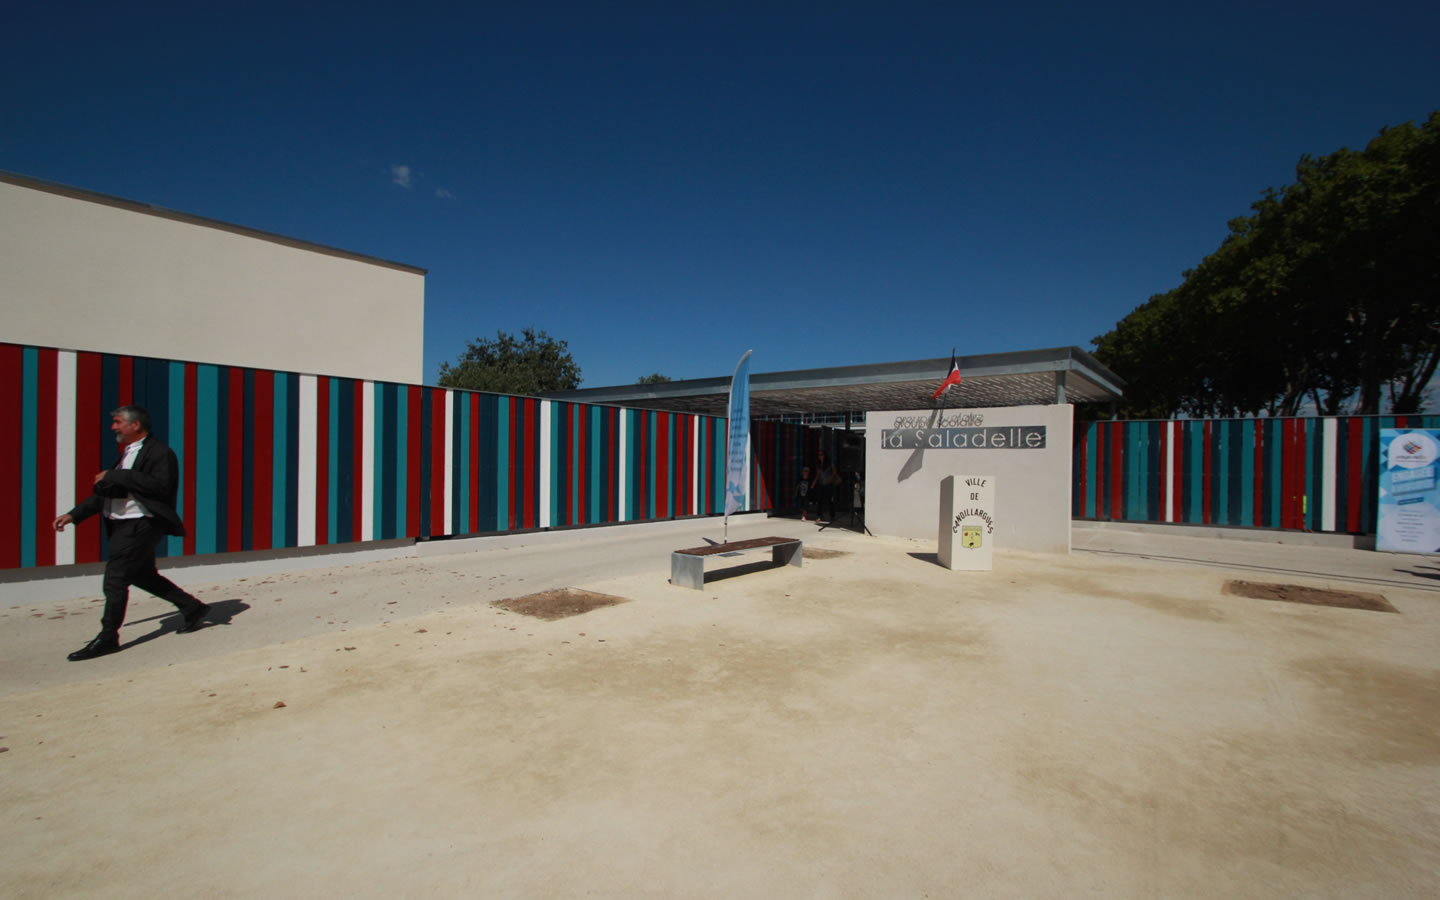 Groupe Scolaire - Candillargues (34) #01